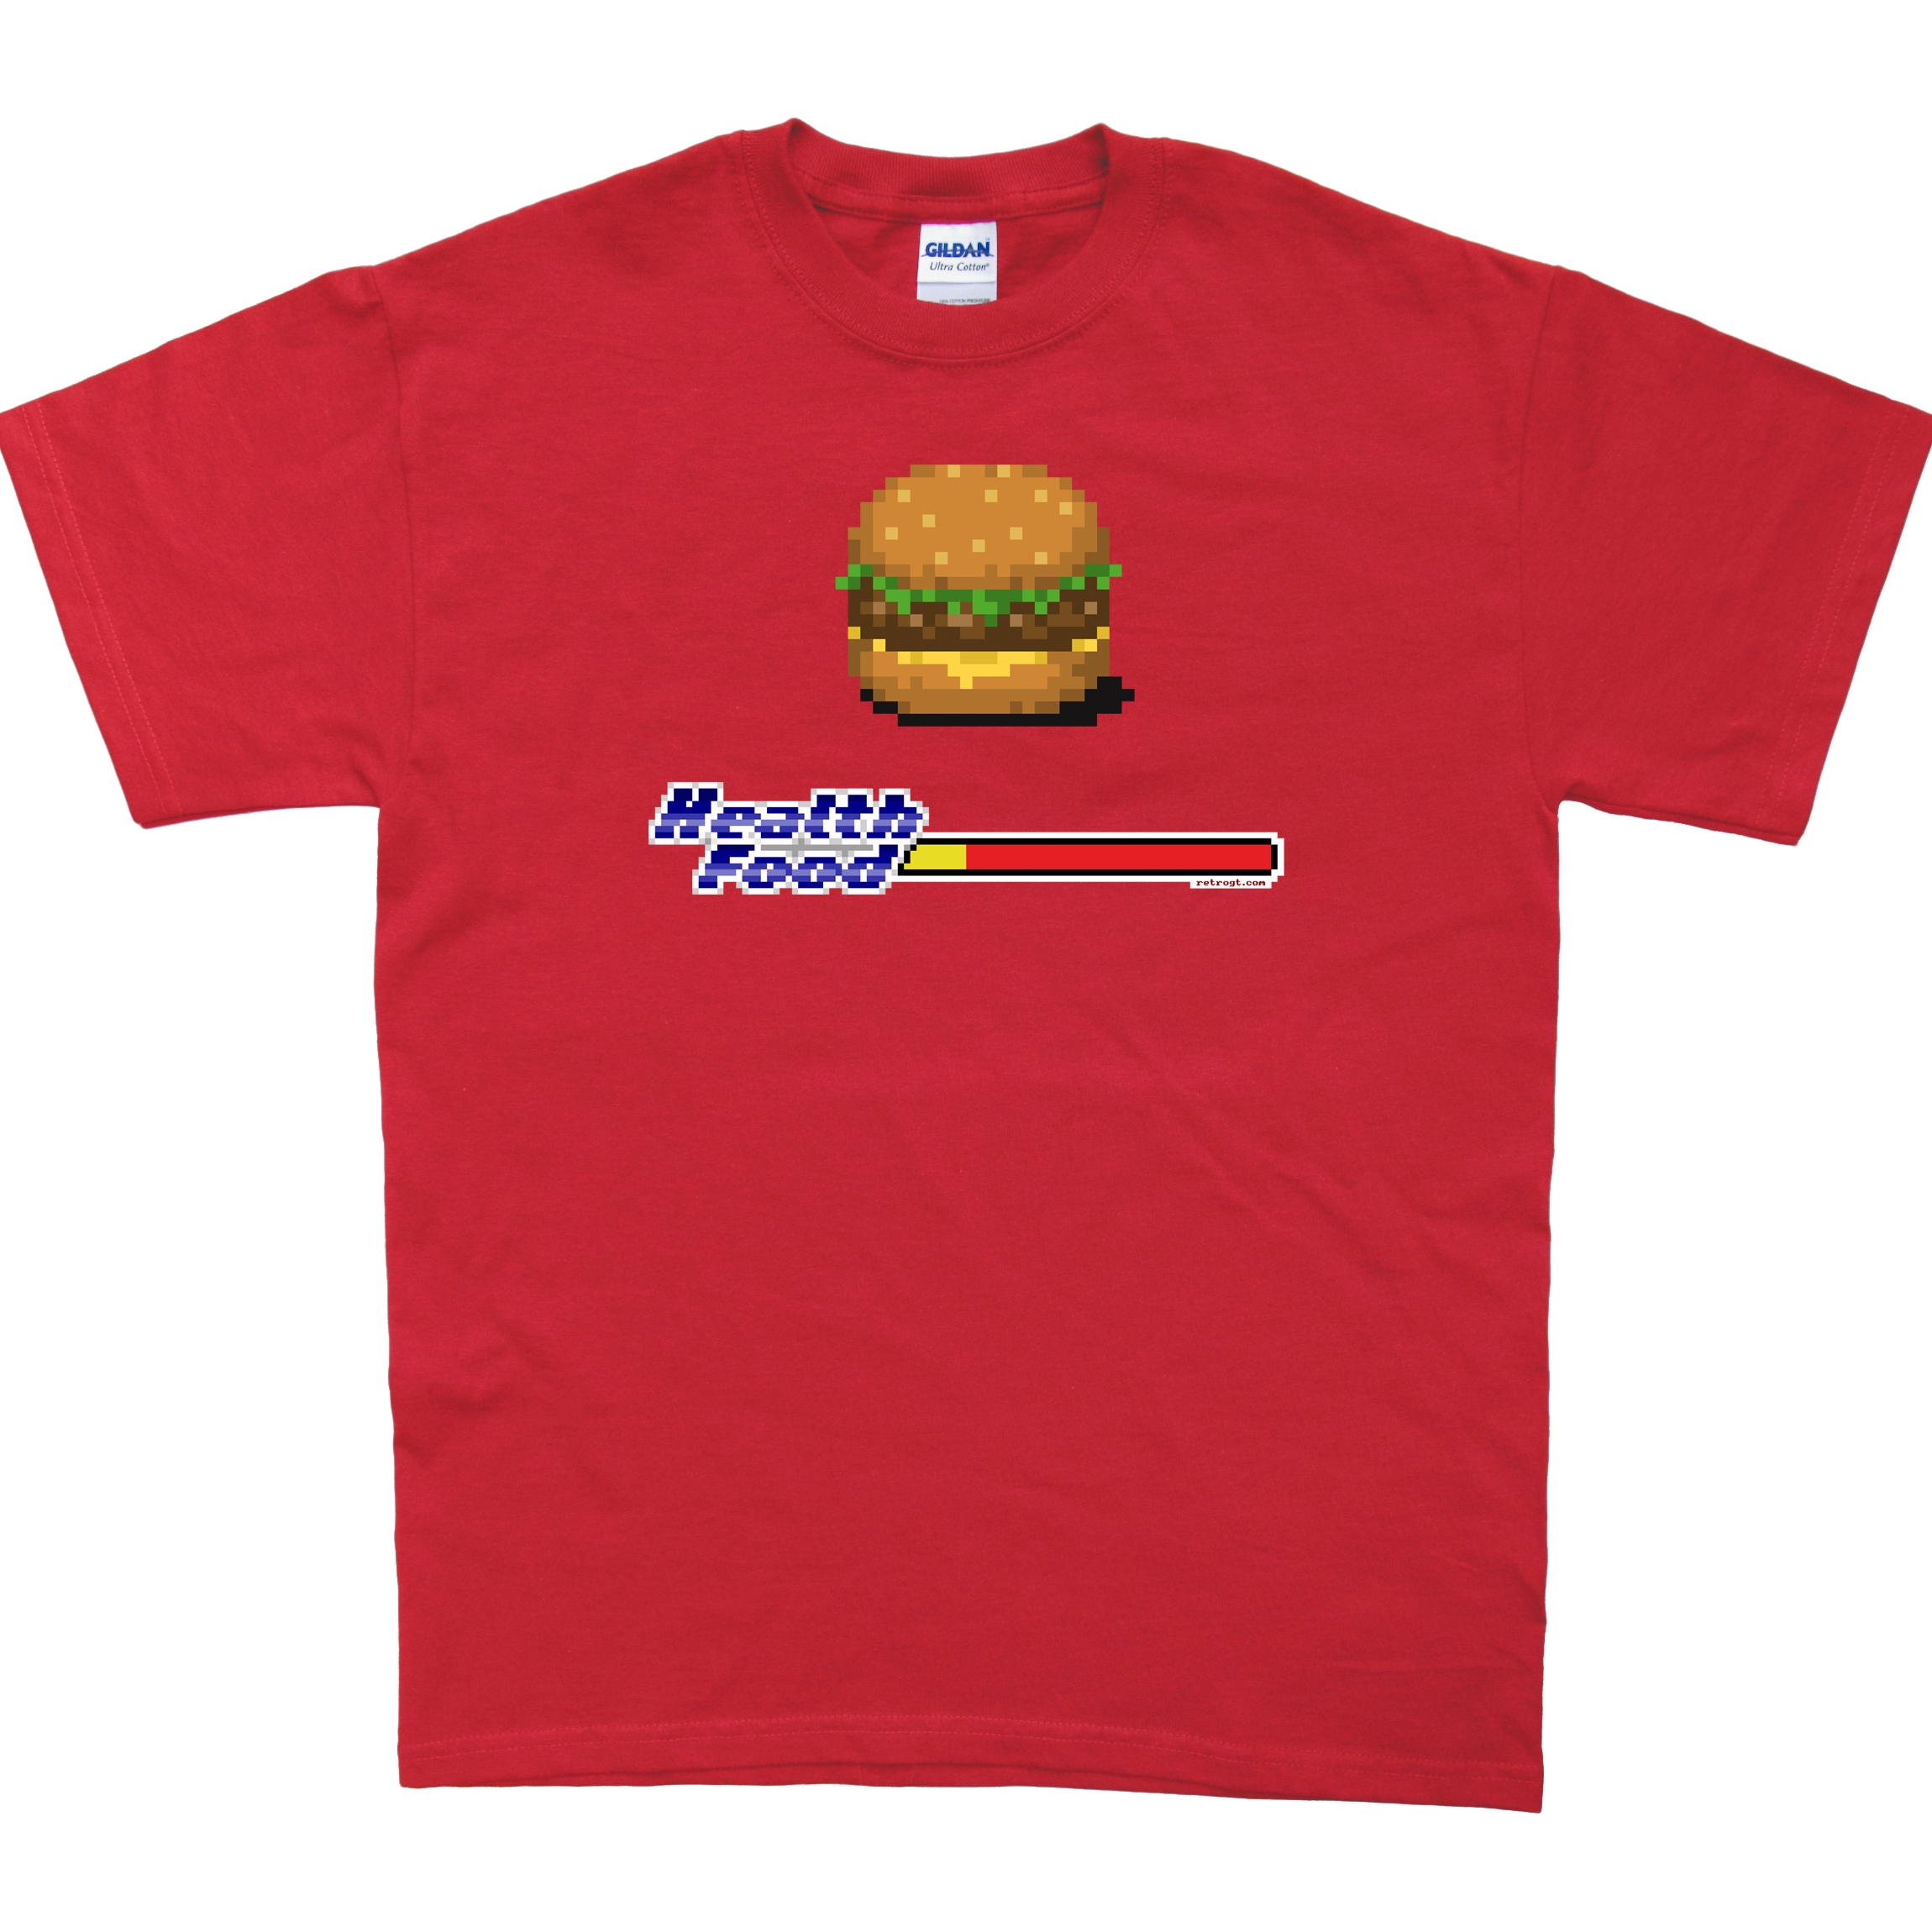 Photograph: Health Food Burger T-Shirt